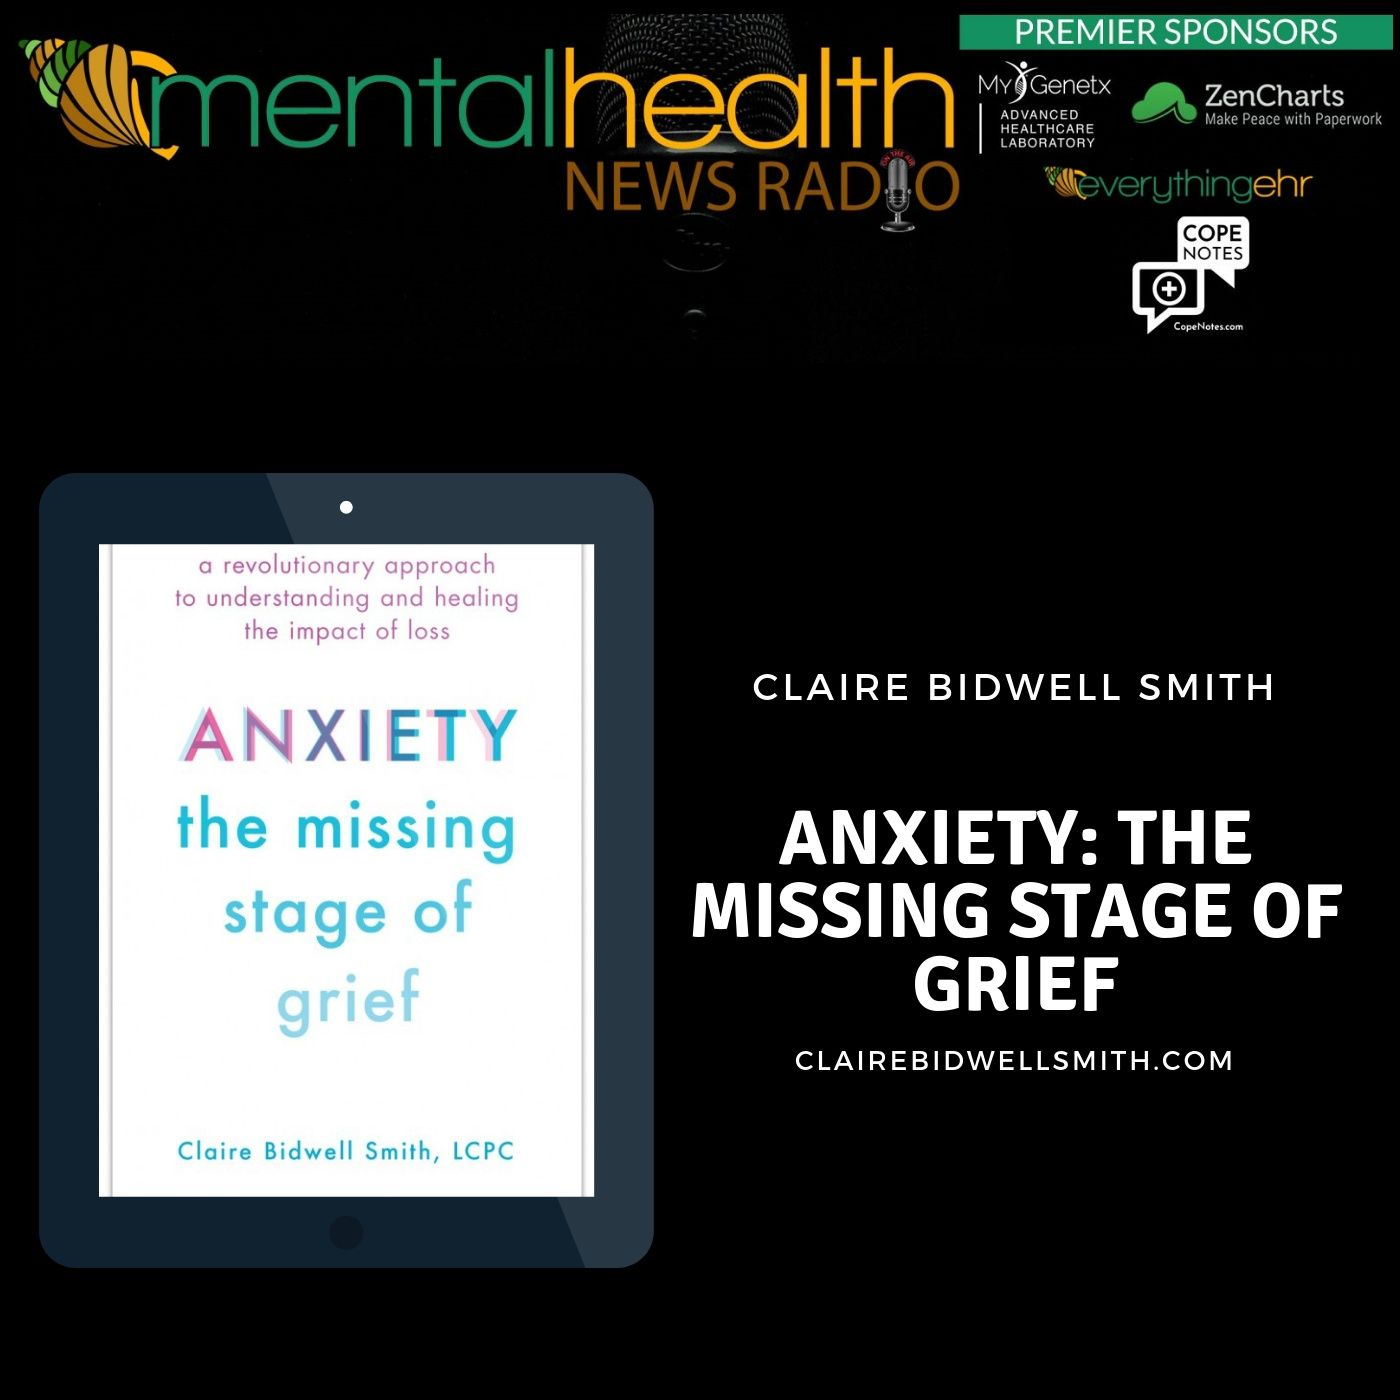 Mental Health News Radio - Anxiety: The Missing Stage of Grief with Claire Bidwell Smith